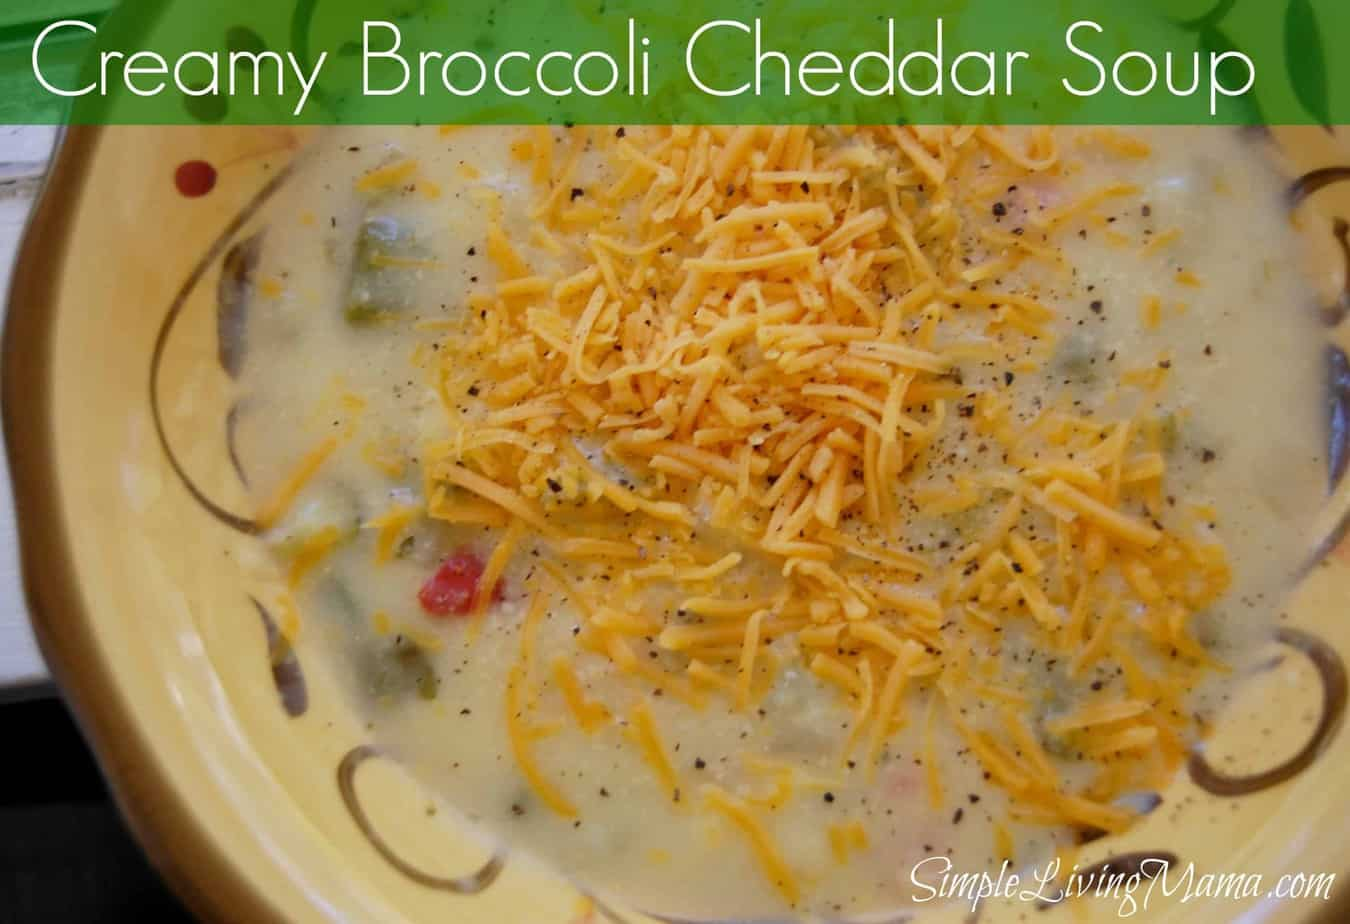 Broccoli Cheddar Soup - Frugal Food Friday - Simple Living Mama